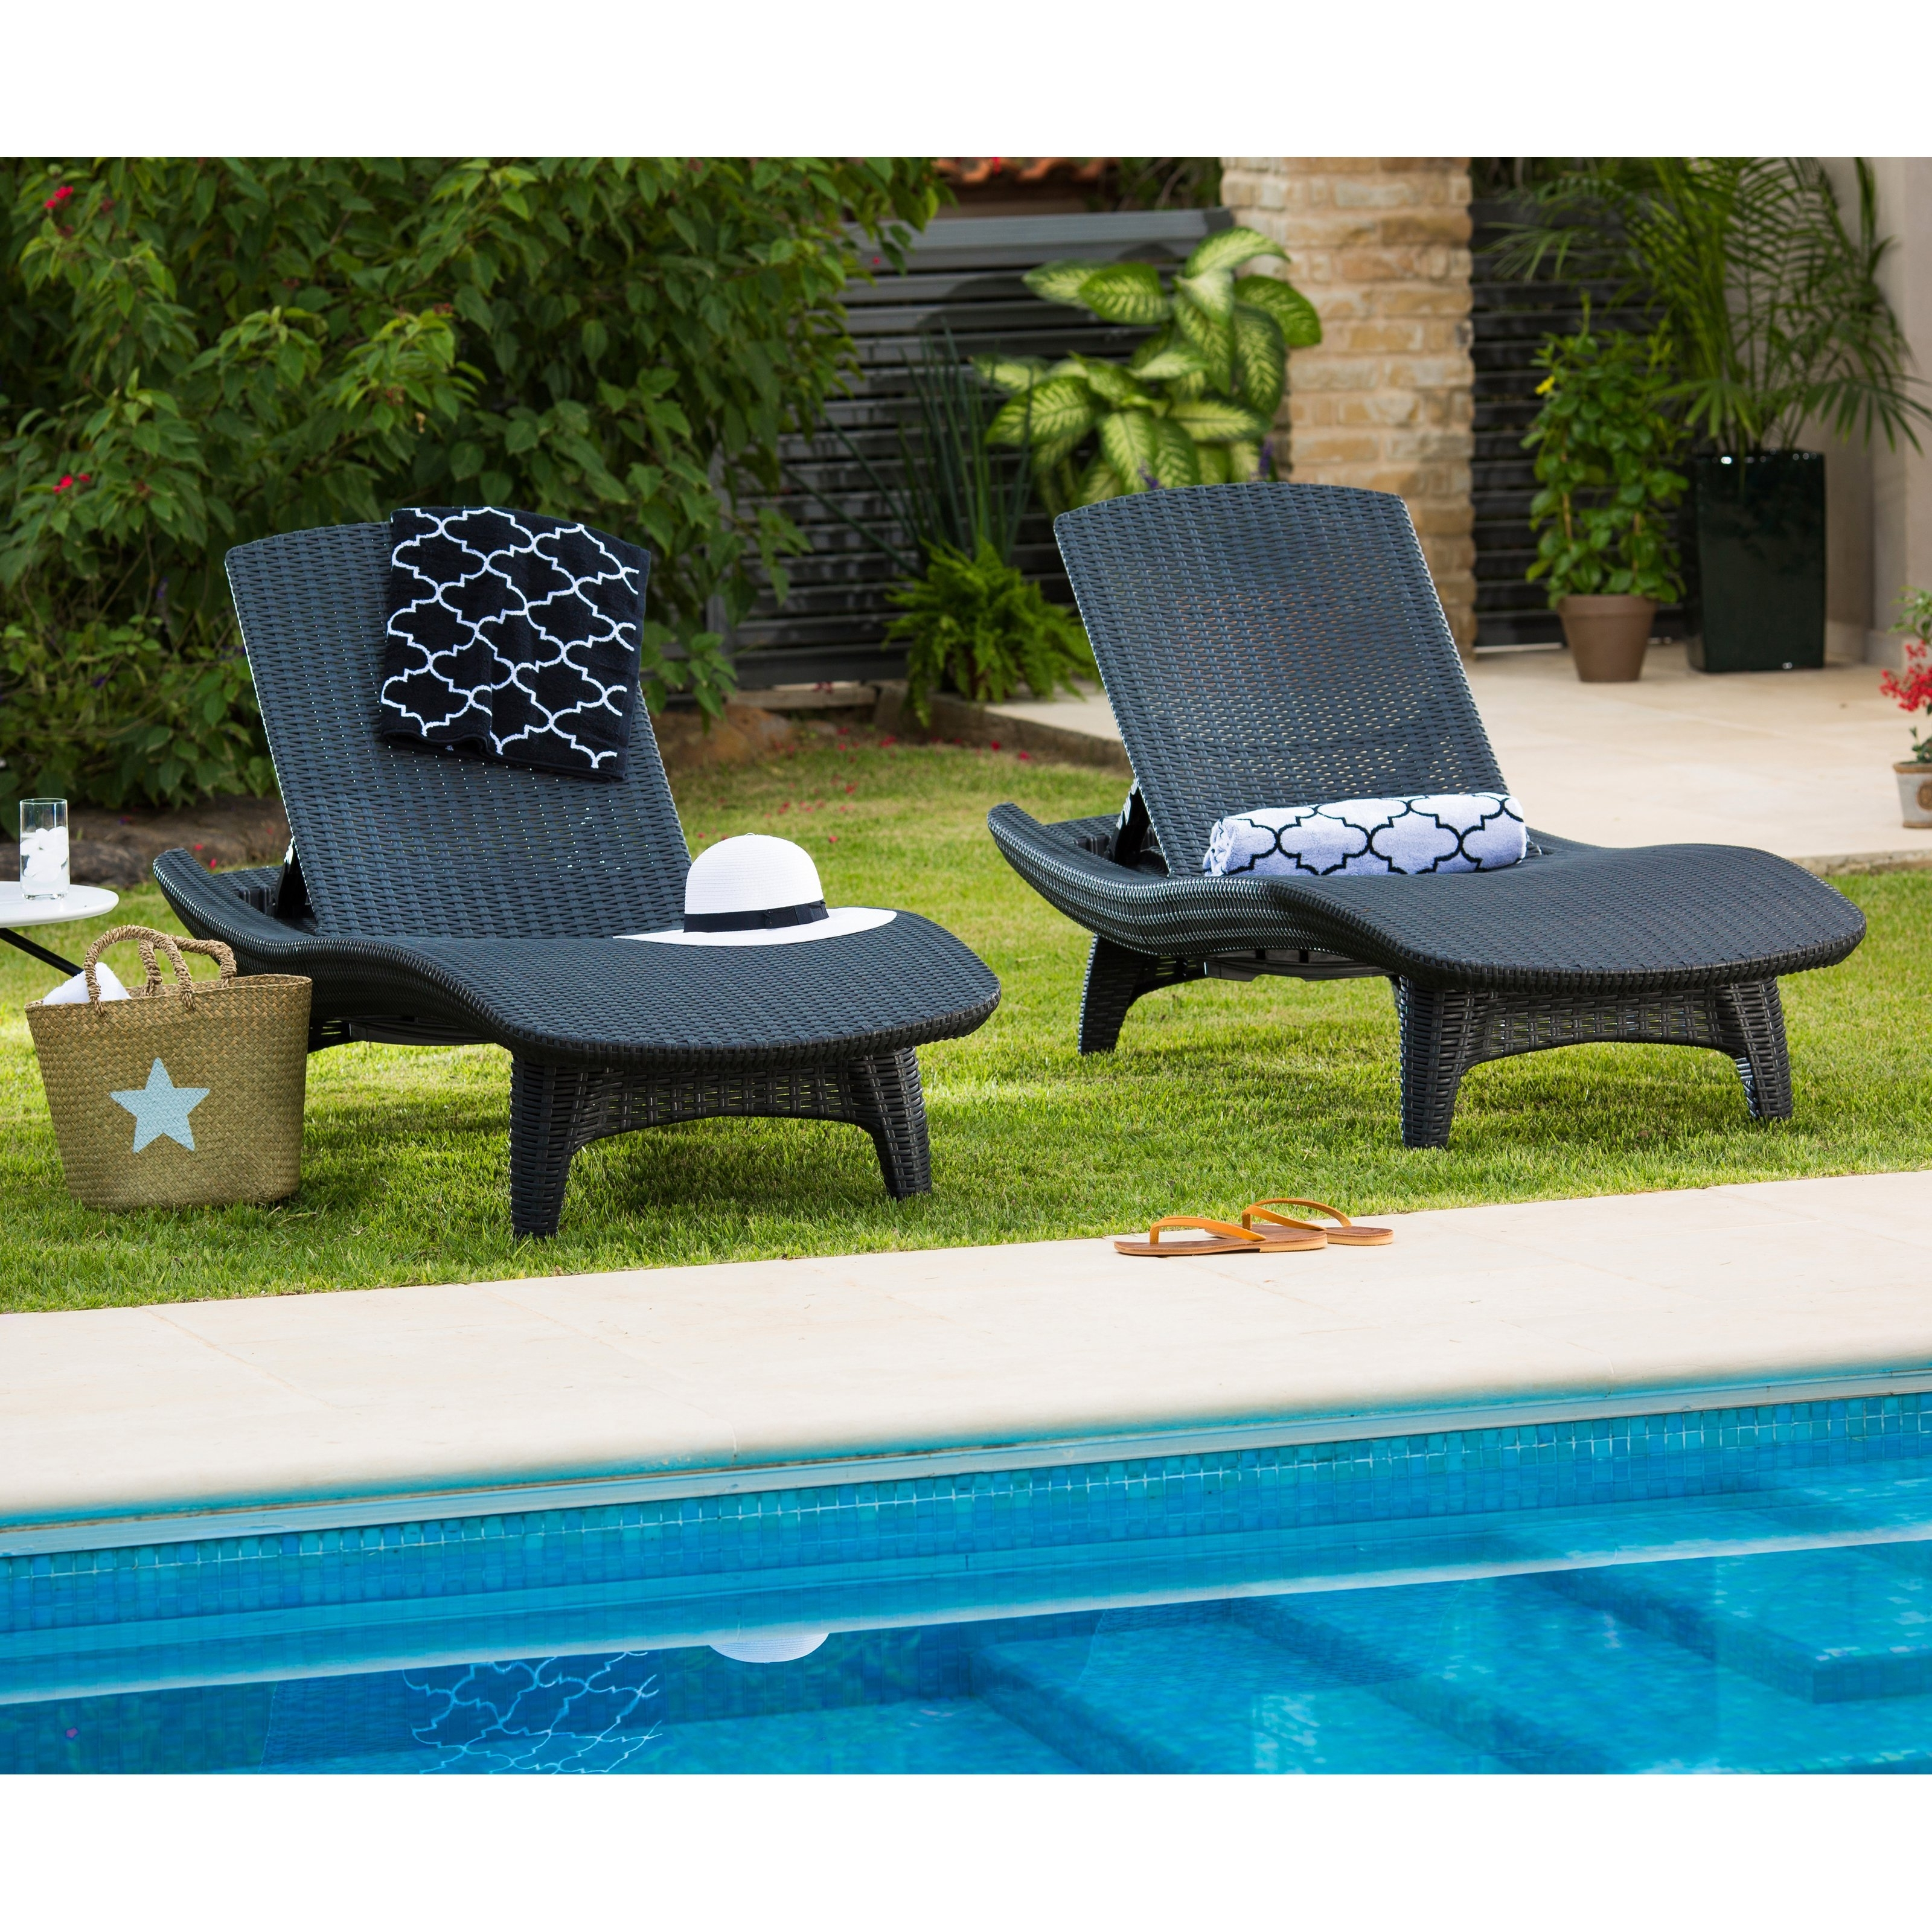 Keter Chaise Lounge Chairs Intended For Most Popular Keter Outdoor Chaise Lounge – Set Of 2 (Gallery 7 of 15)